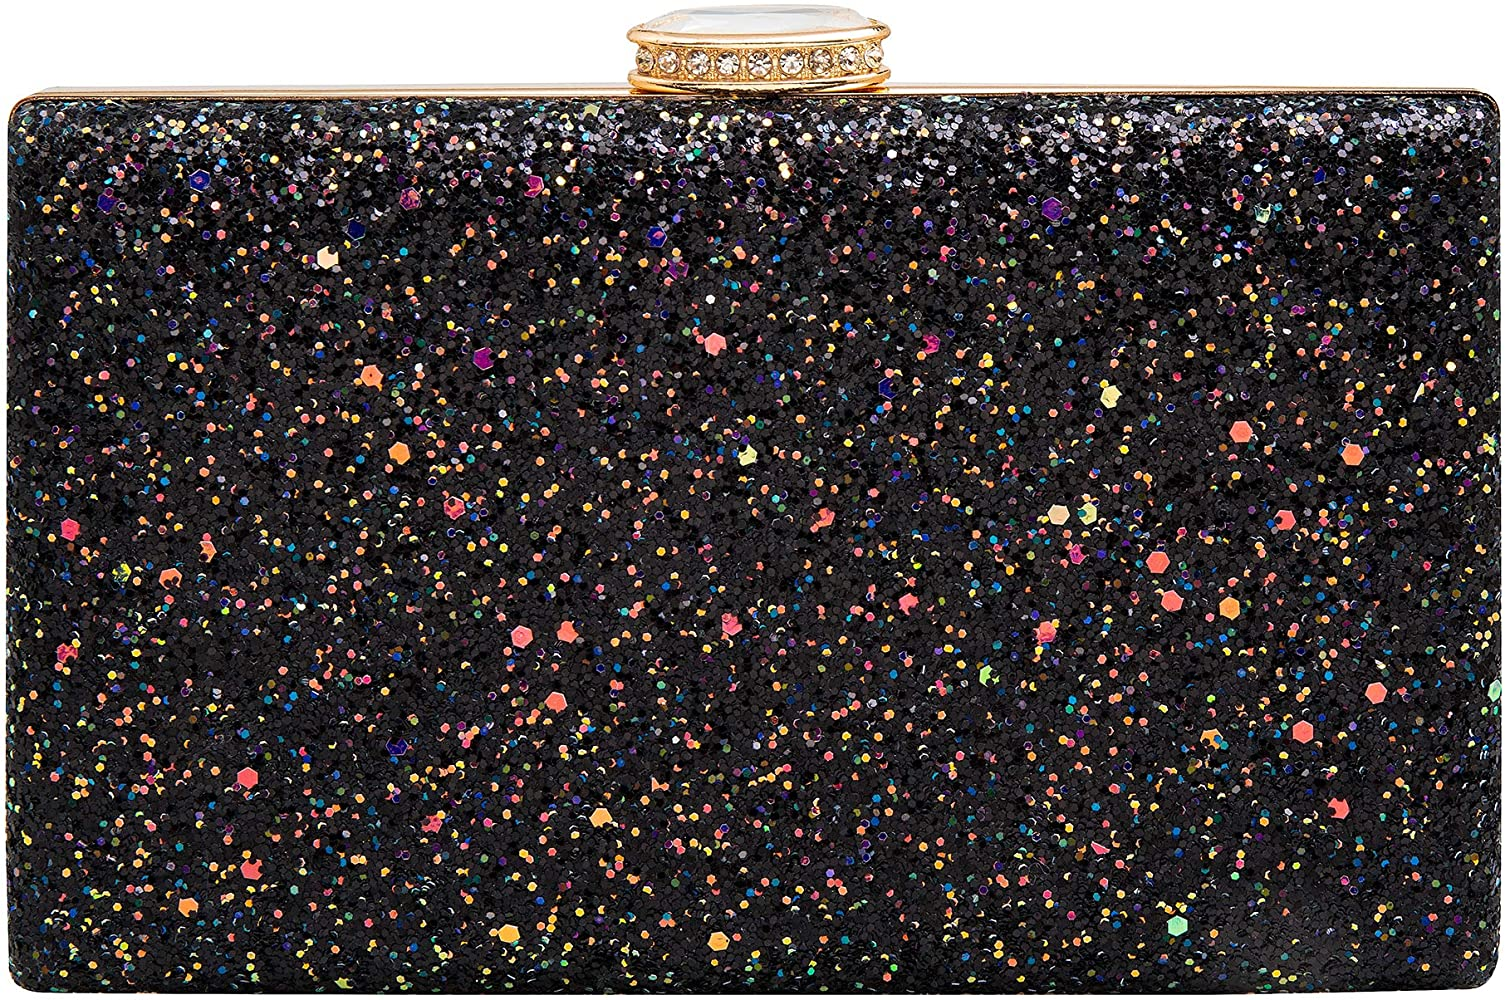 Evening Handbags Clutch Purse Envelope Bags Wedding Gown Party Wallet For Women